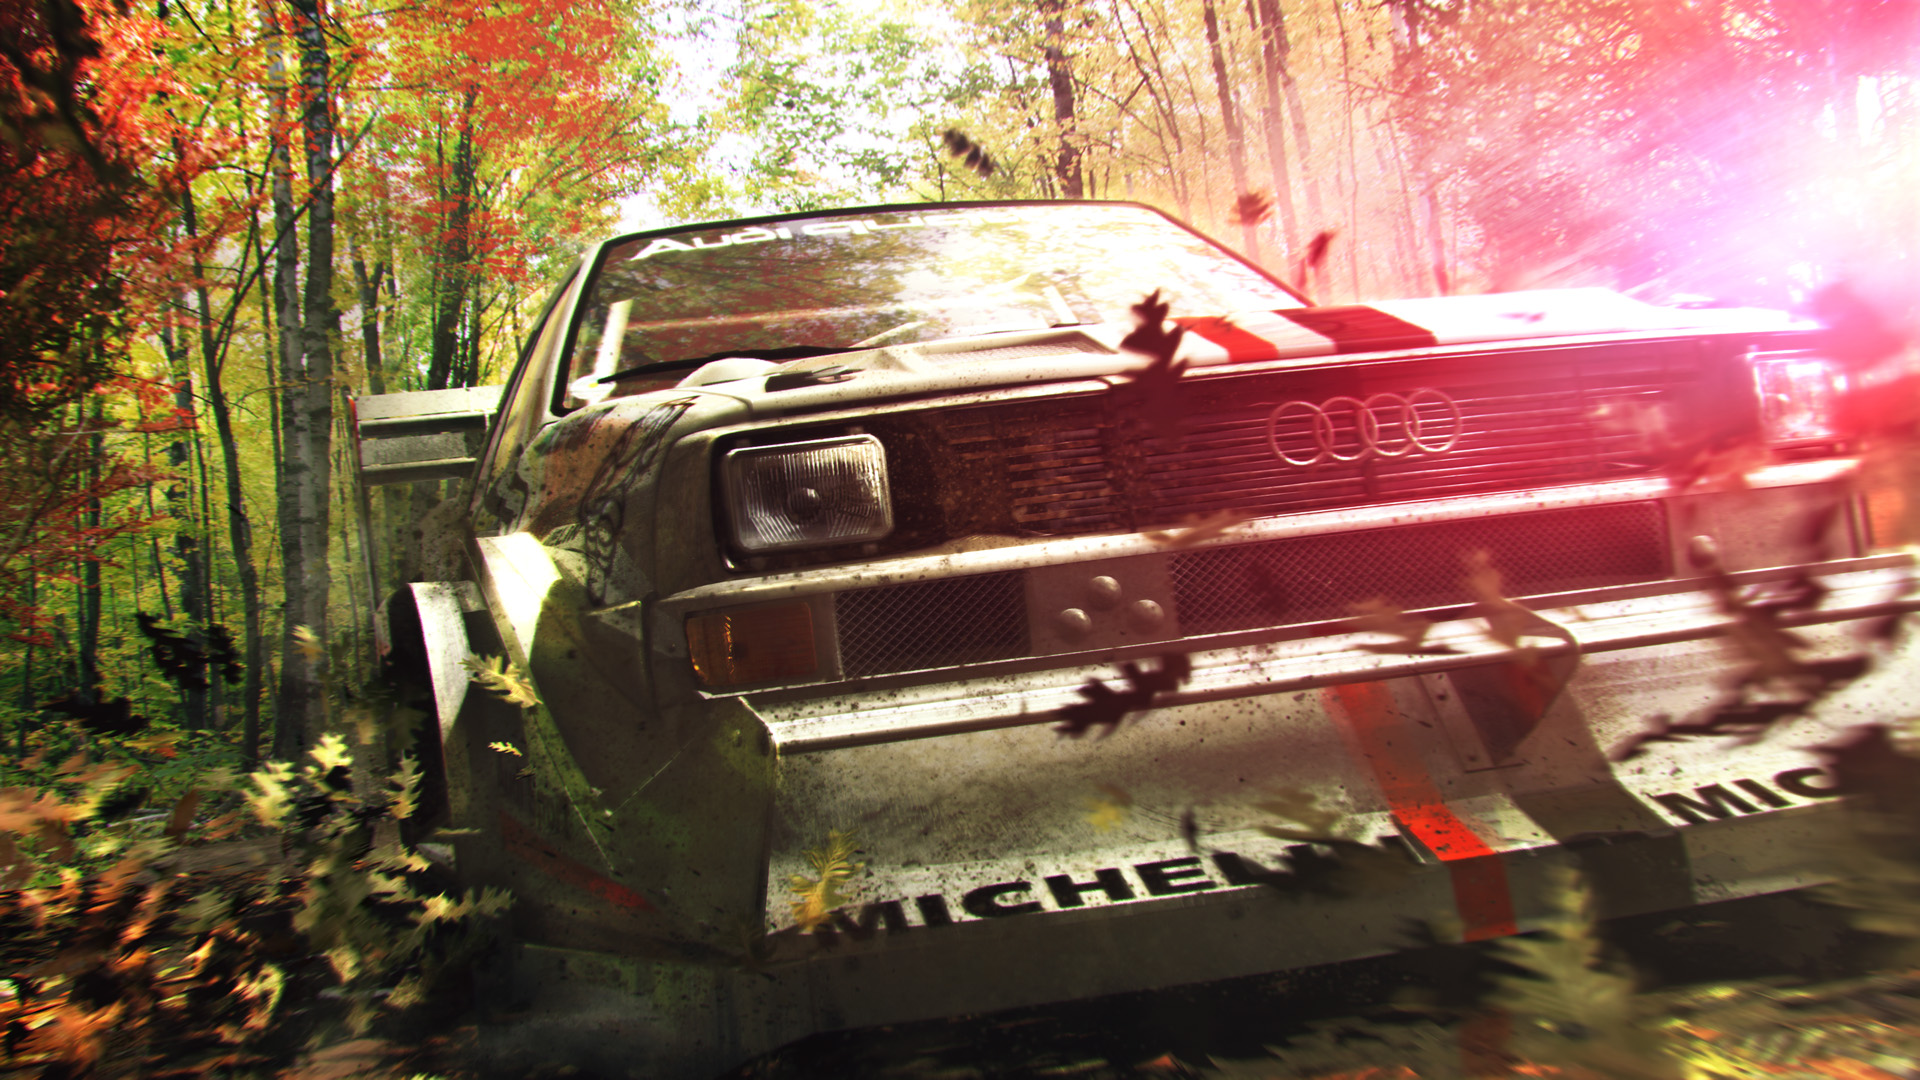 Group B Rally Cars Hit Dirt 3 in this New Trailer